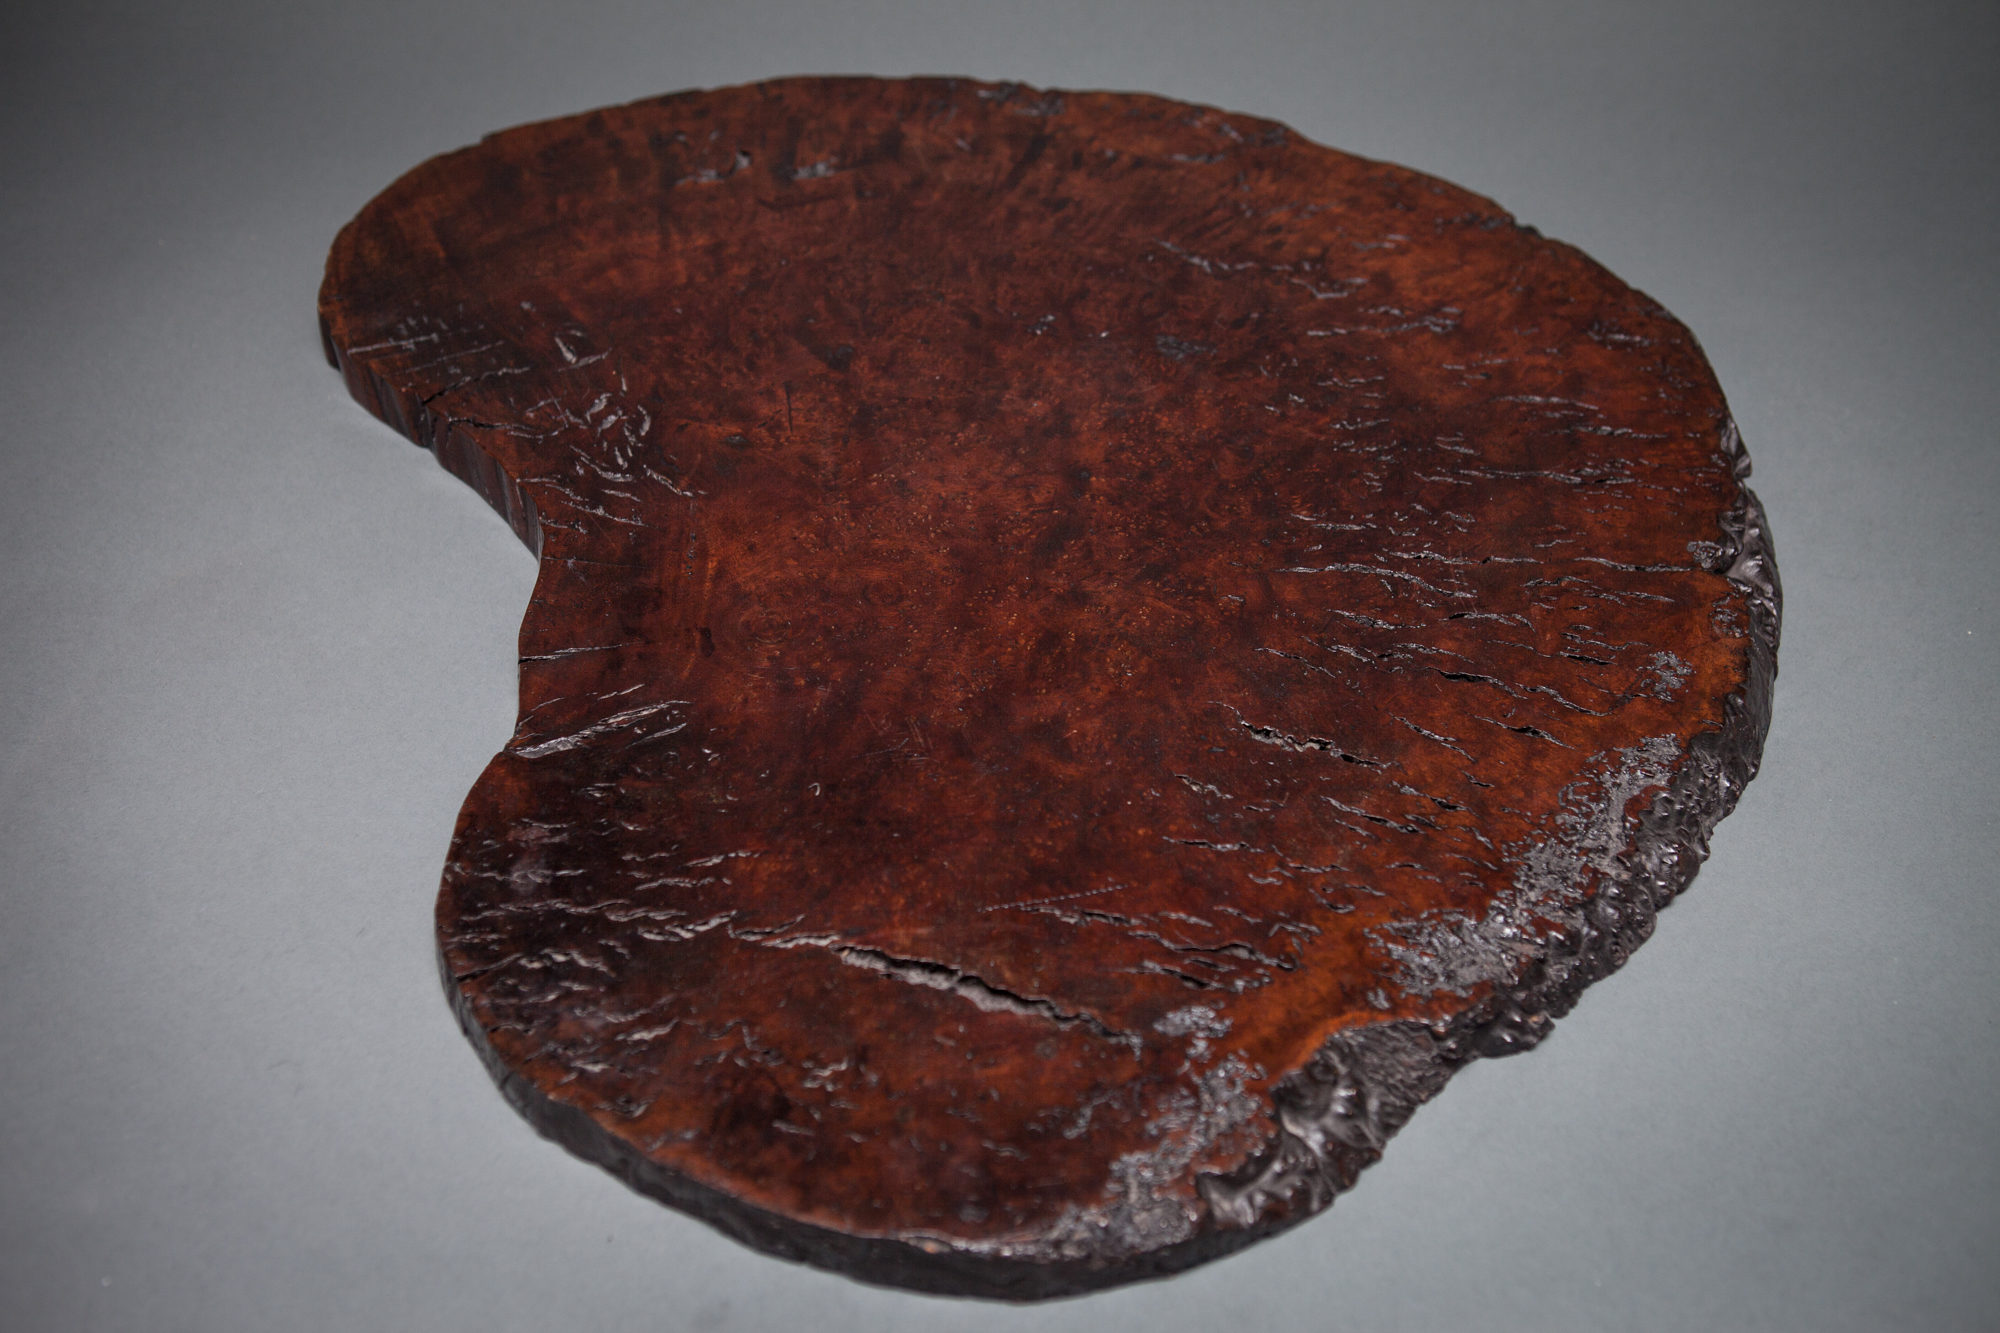 Japanese Sliced Burl Wood, Natural Shaped Tray